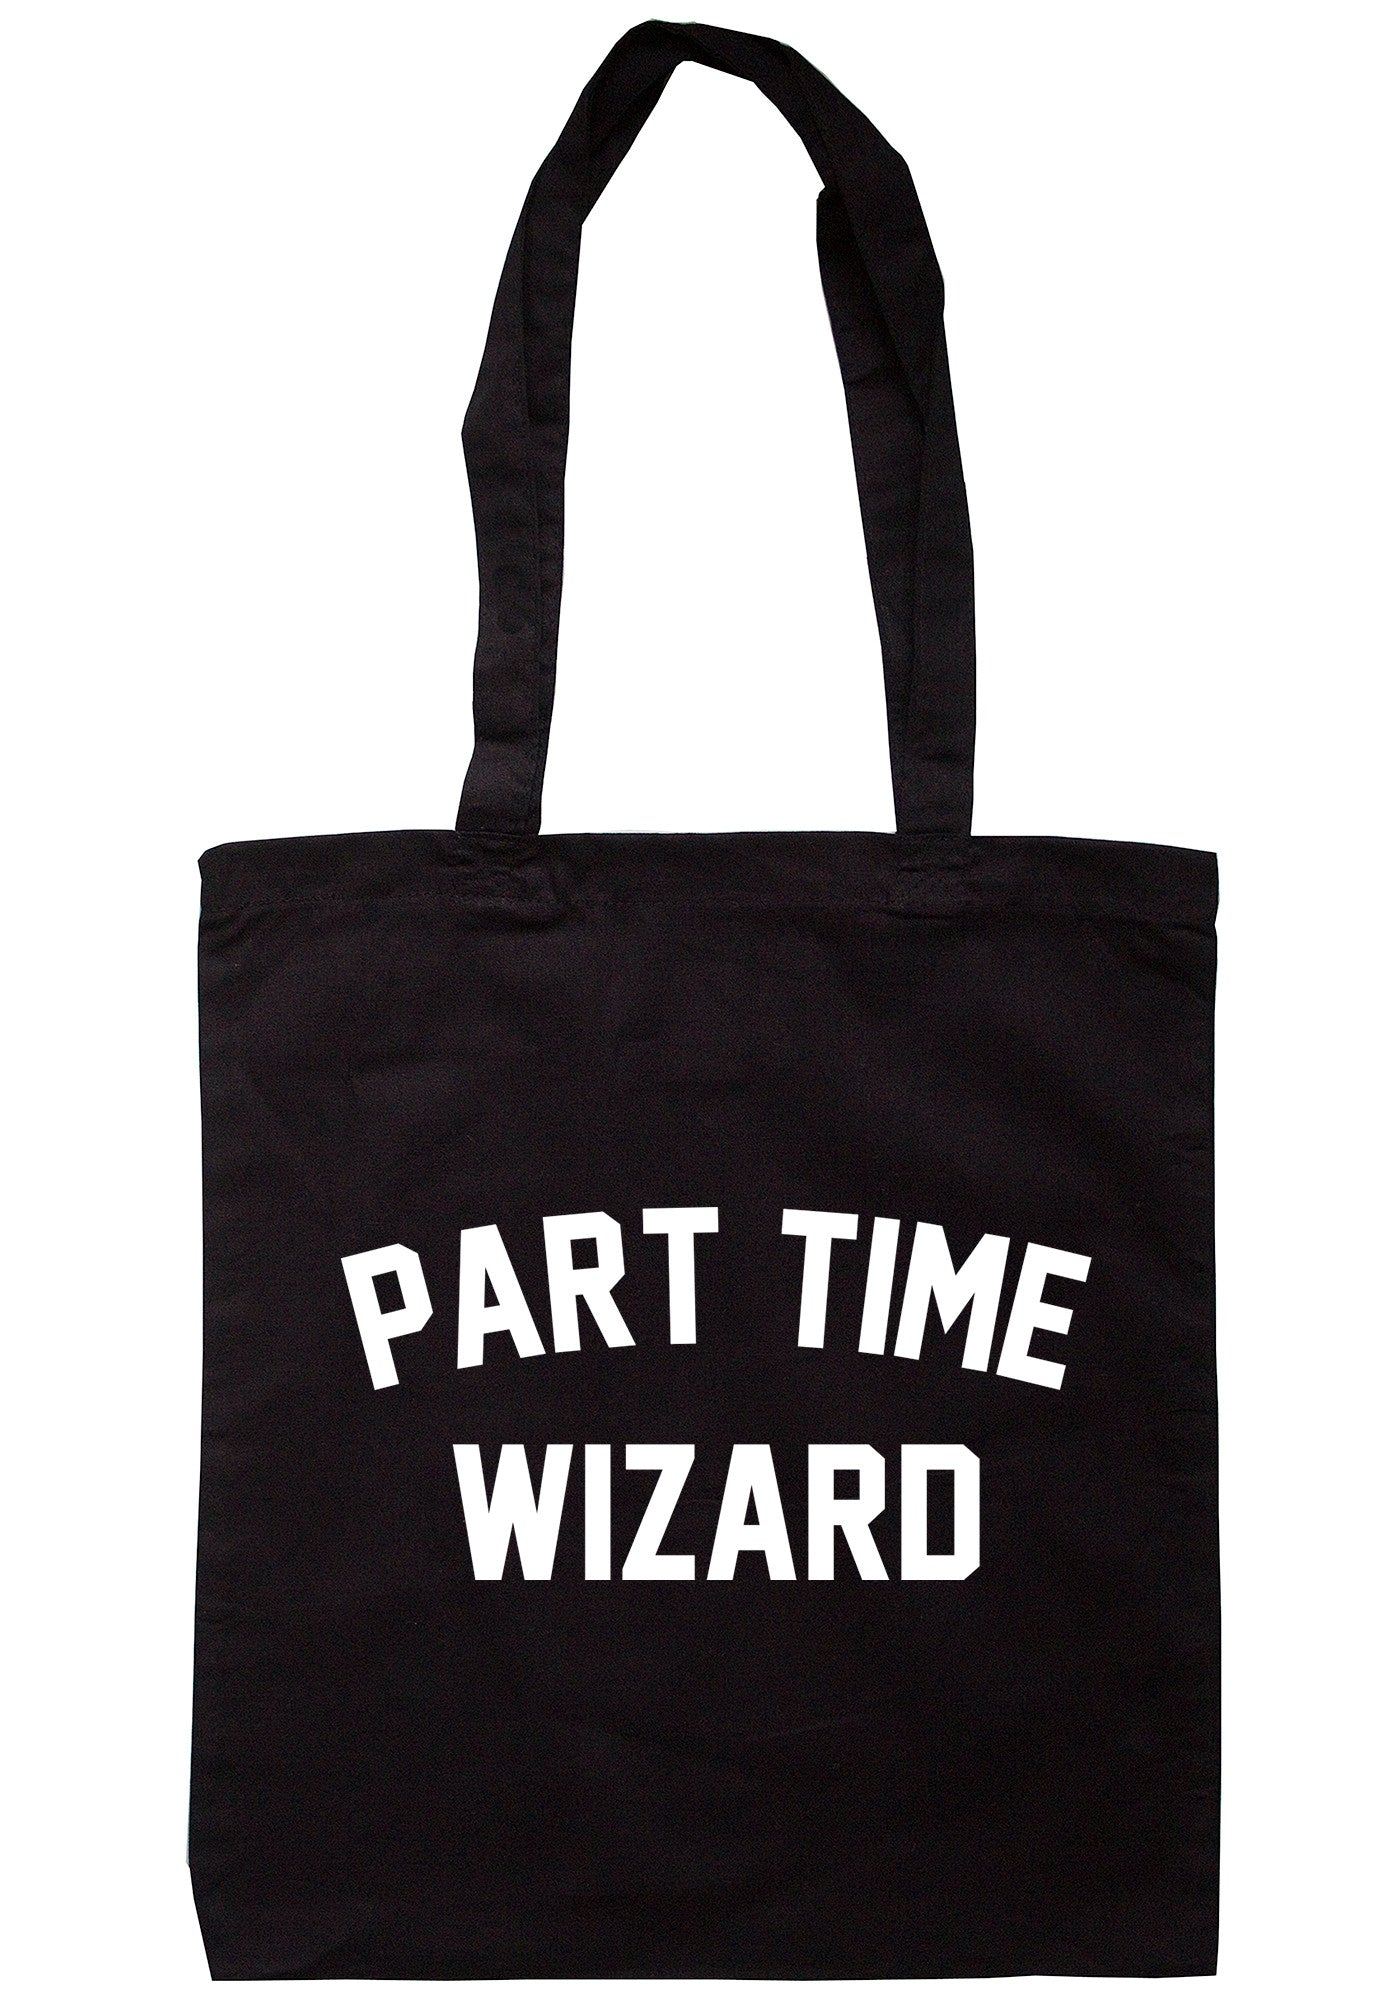 Part Time Wizard Tote Bag TB0550 - Illustrated Identity Ltd.